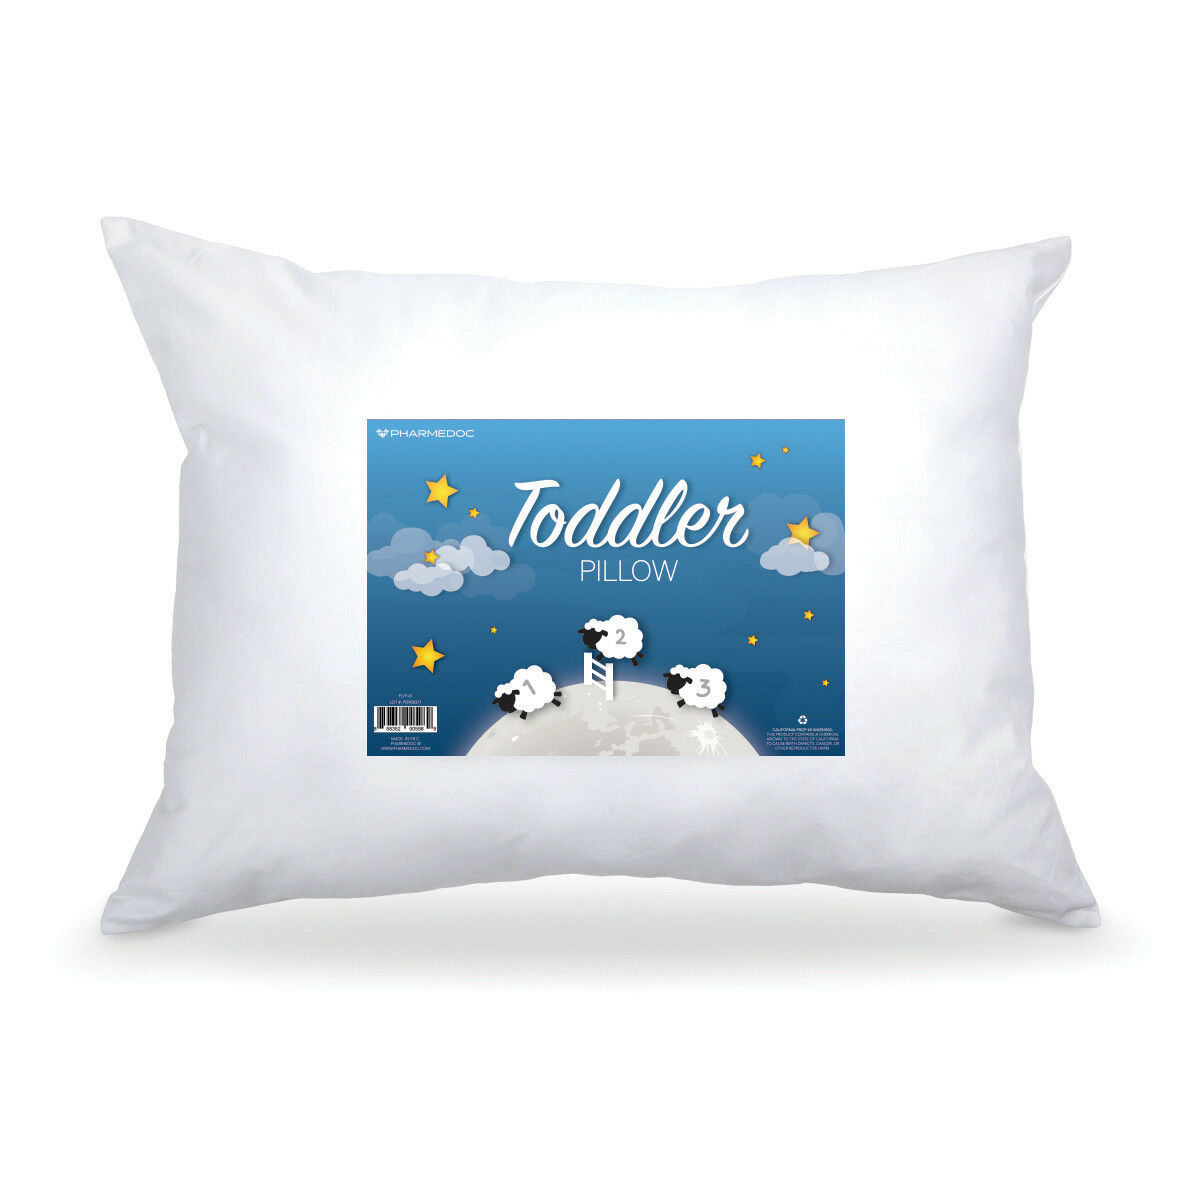 PharMeDoc Toddler Pillow - Little Pillow for Kids Ages 1-5 -